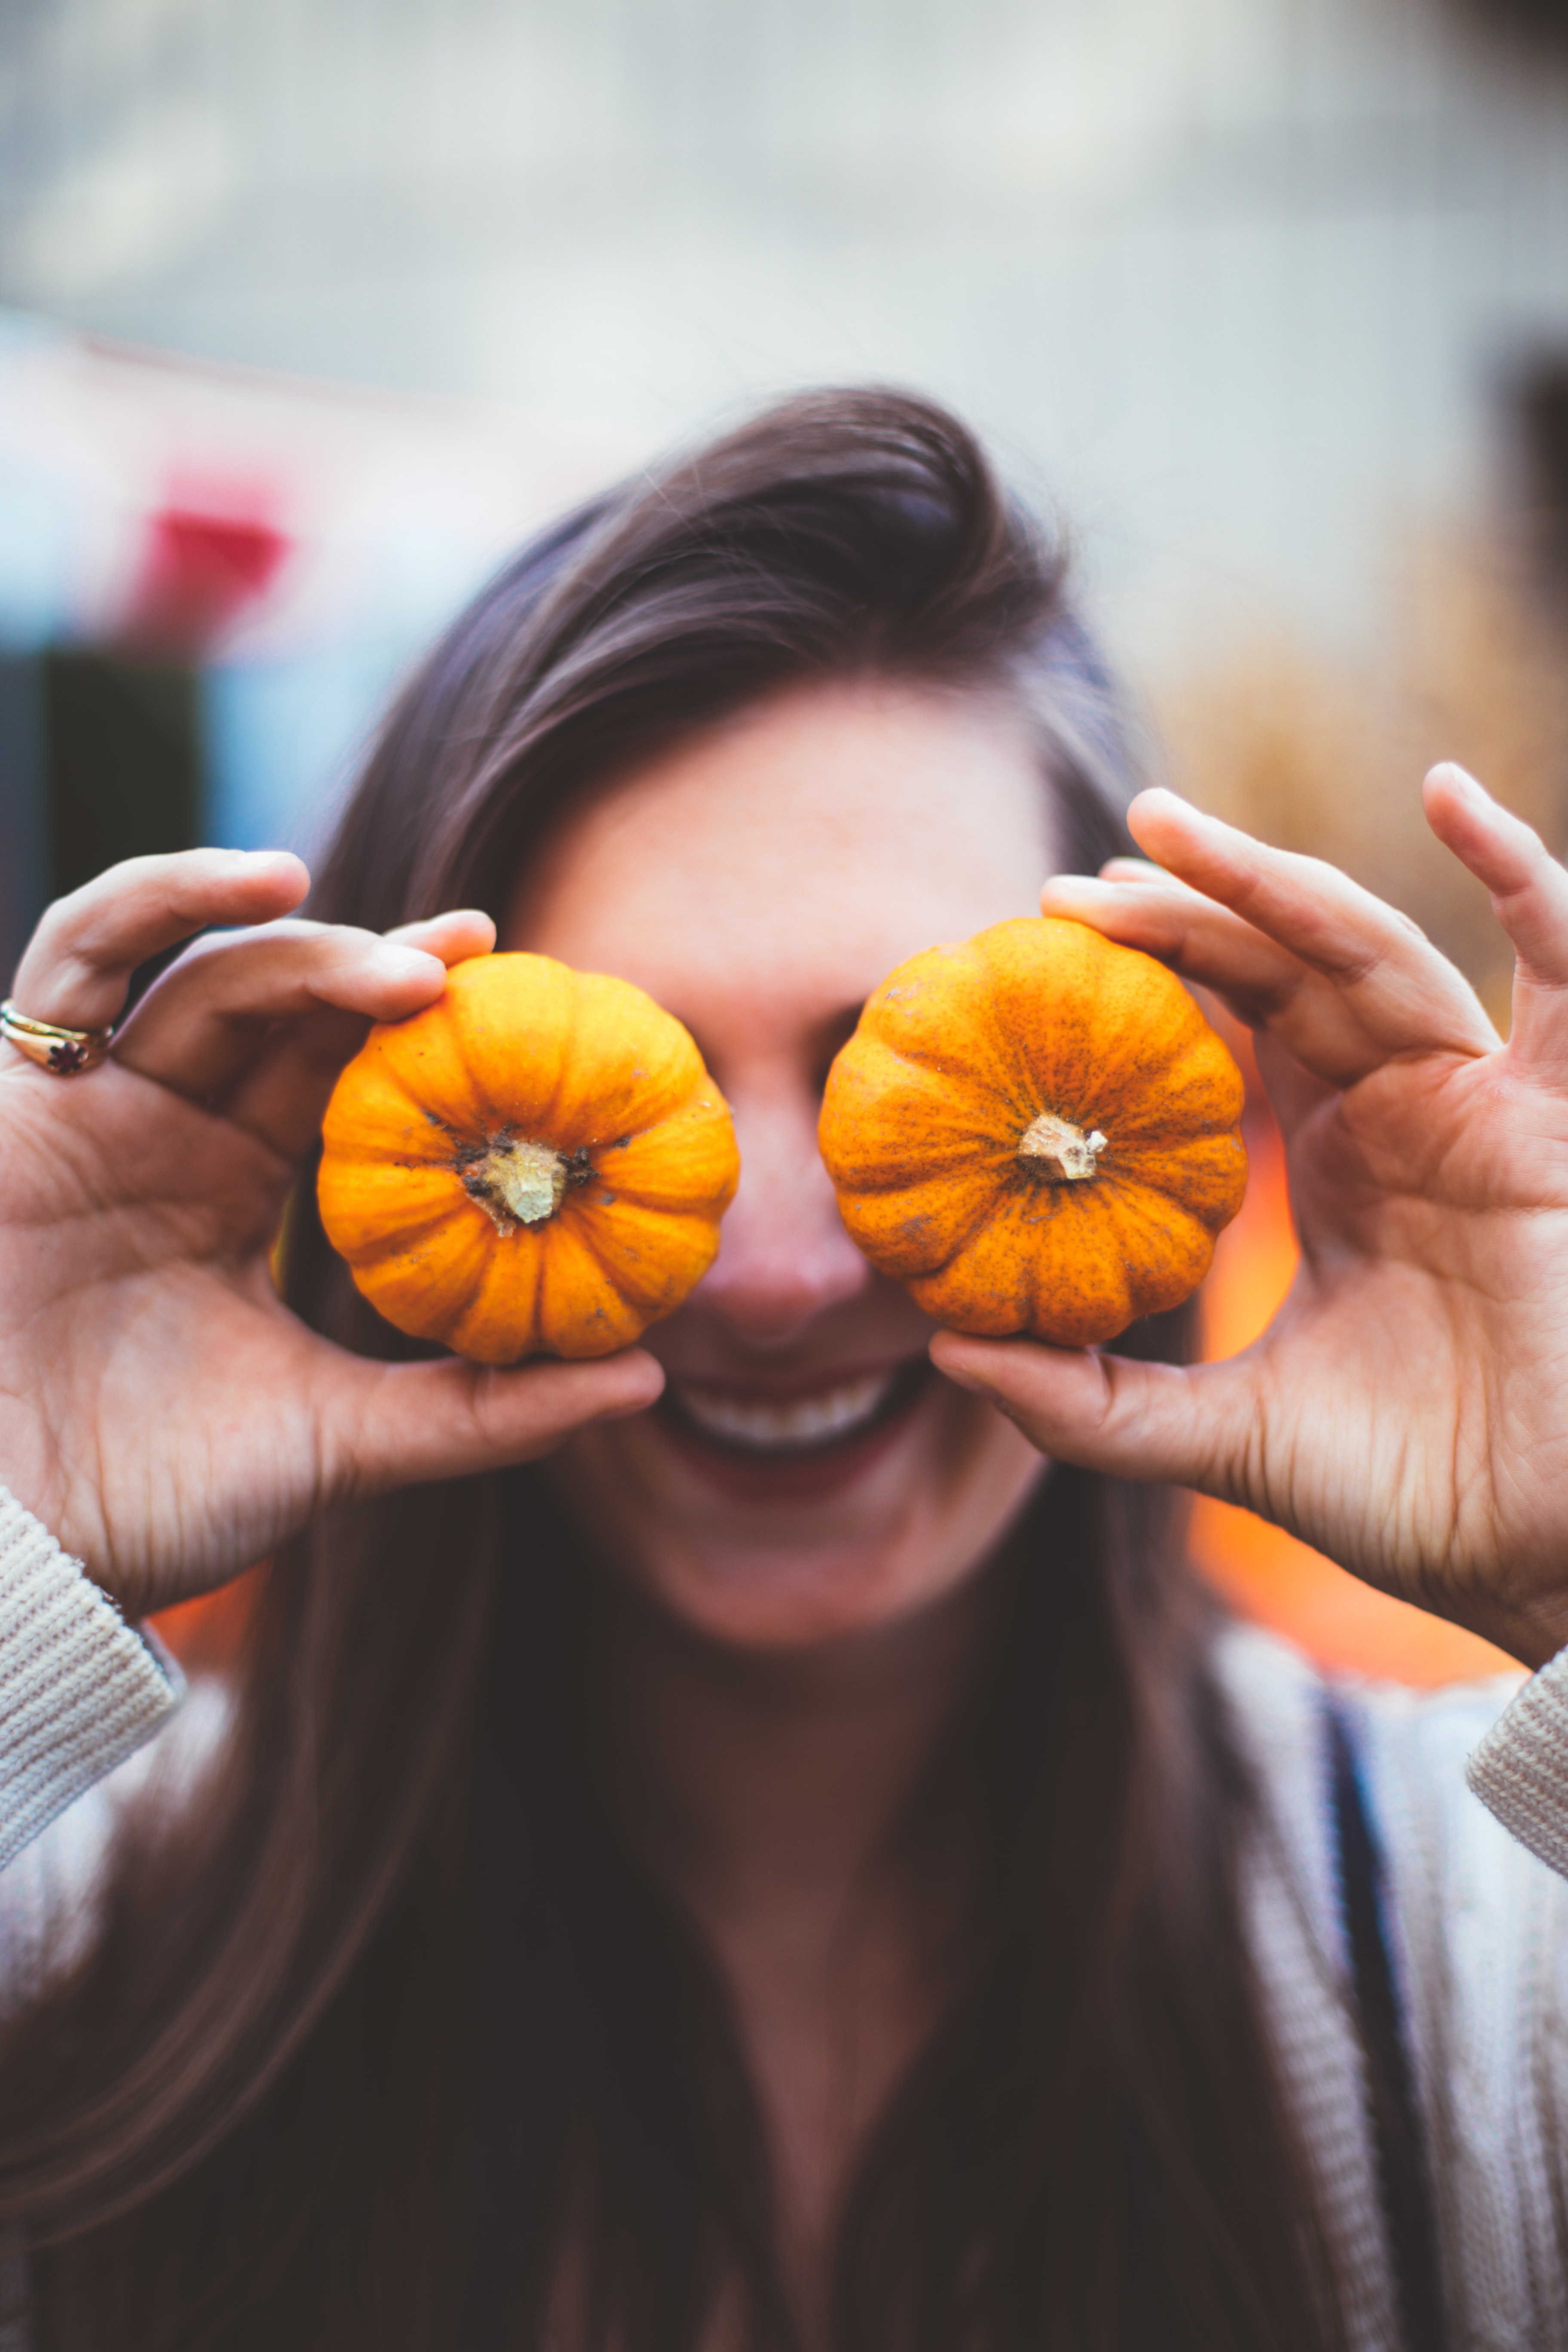 woman holding two orange pumpkins covering her eyes